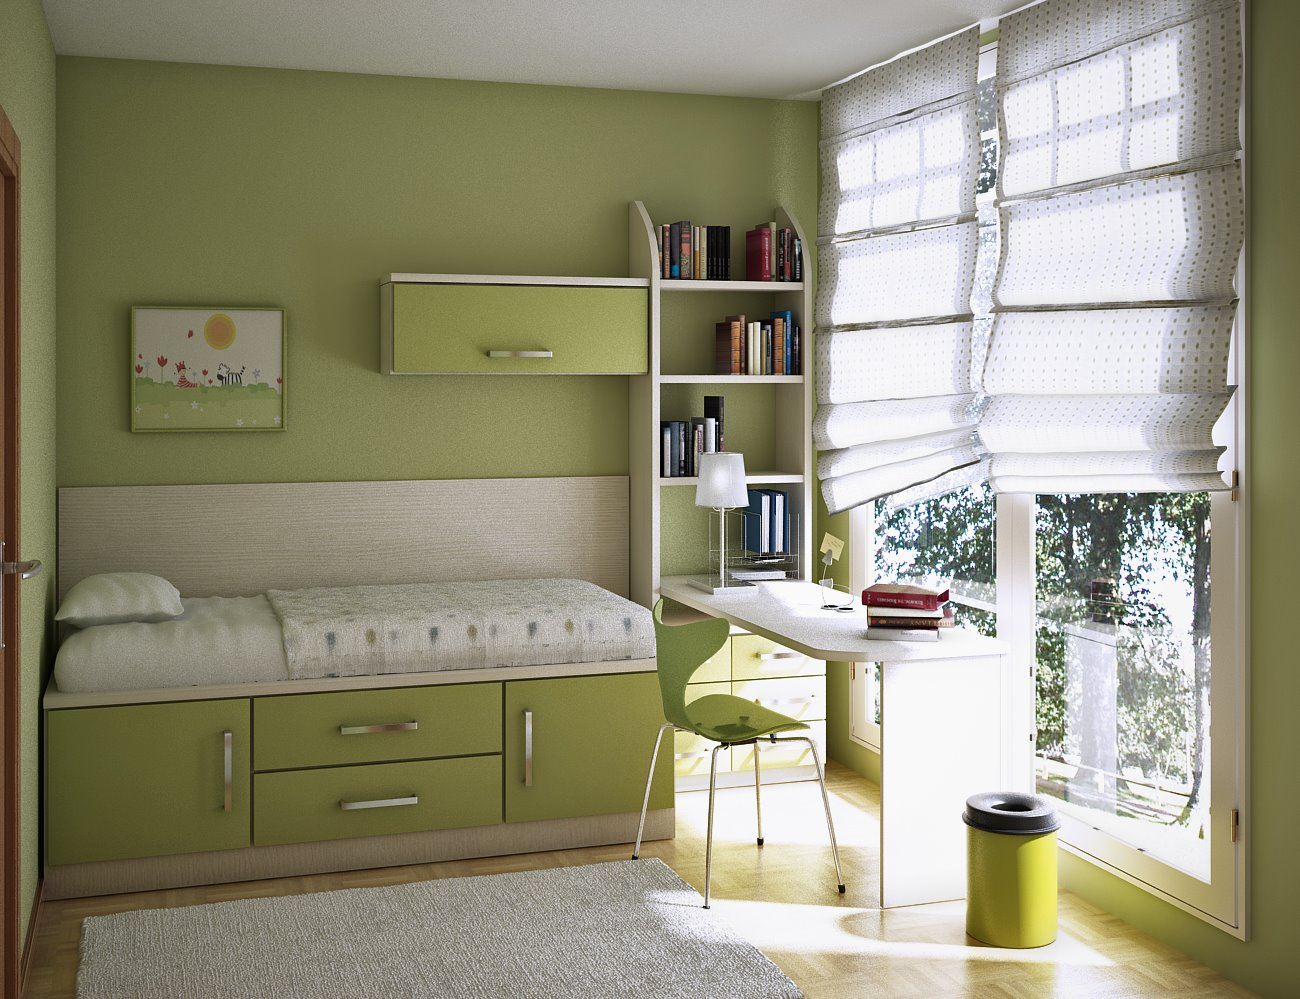 Small Children S Room Ideas: Kids Room Designs And Children's Study Rooms